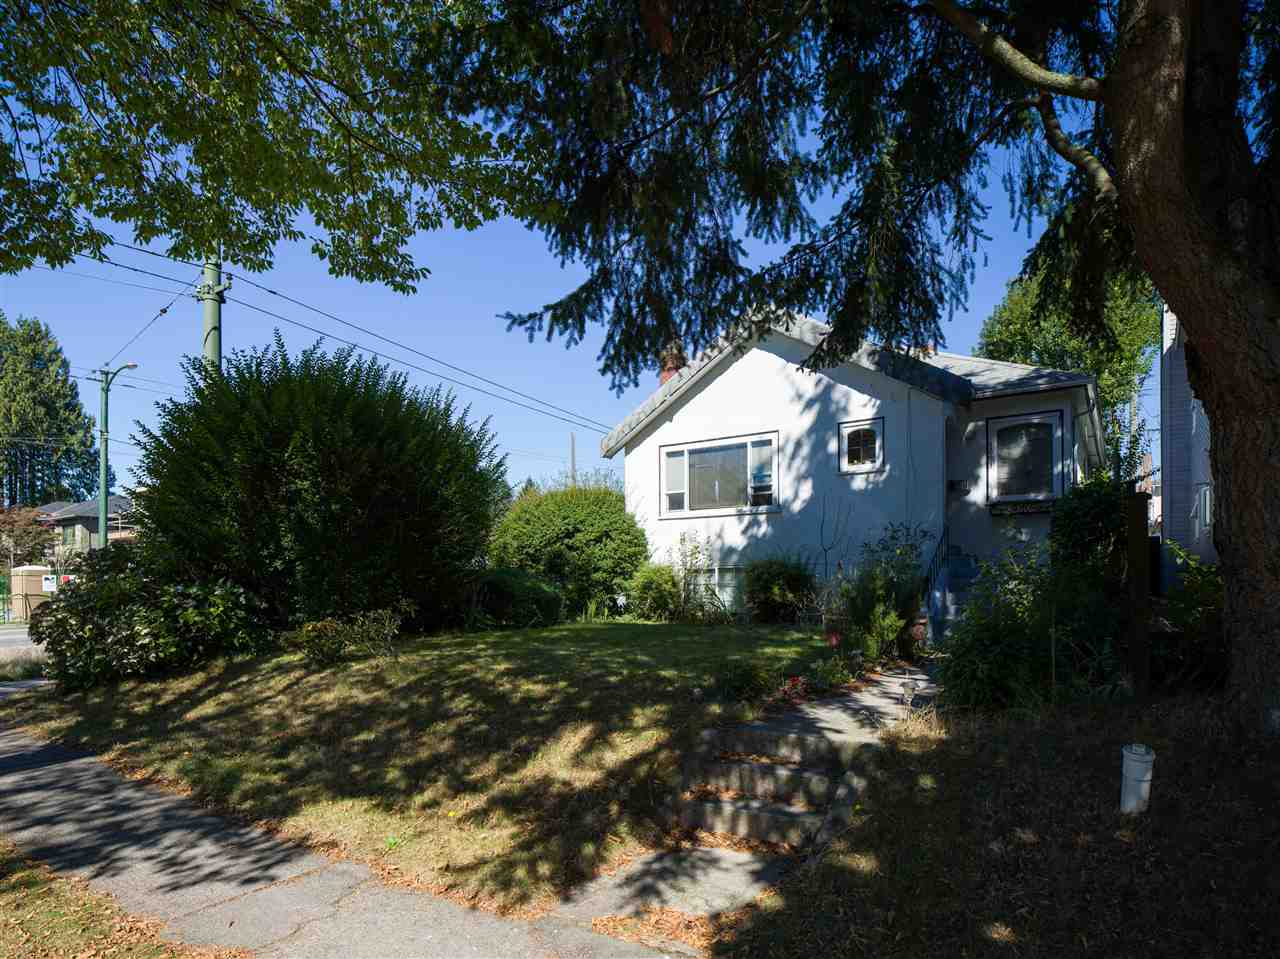 4693 W 8TH AVENUE - Point Grey House/Single Family for sale, 4 Bedrooms (R2496339) - #1